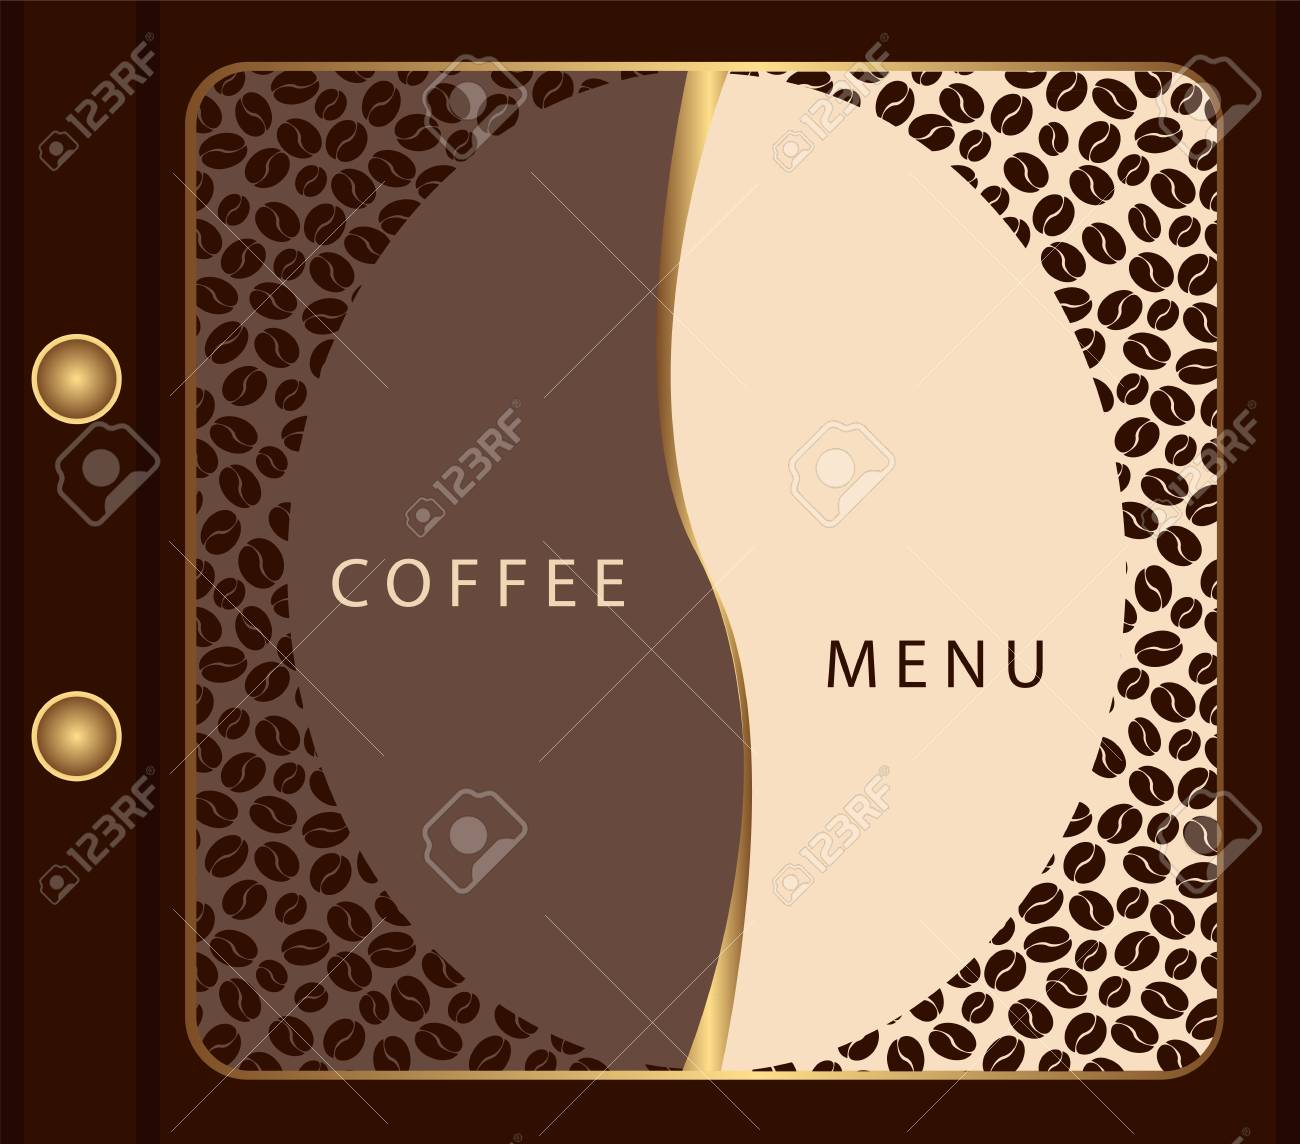 Coffee menu template Stock Vector - 11483673